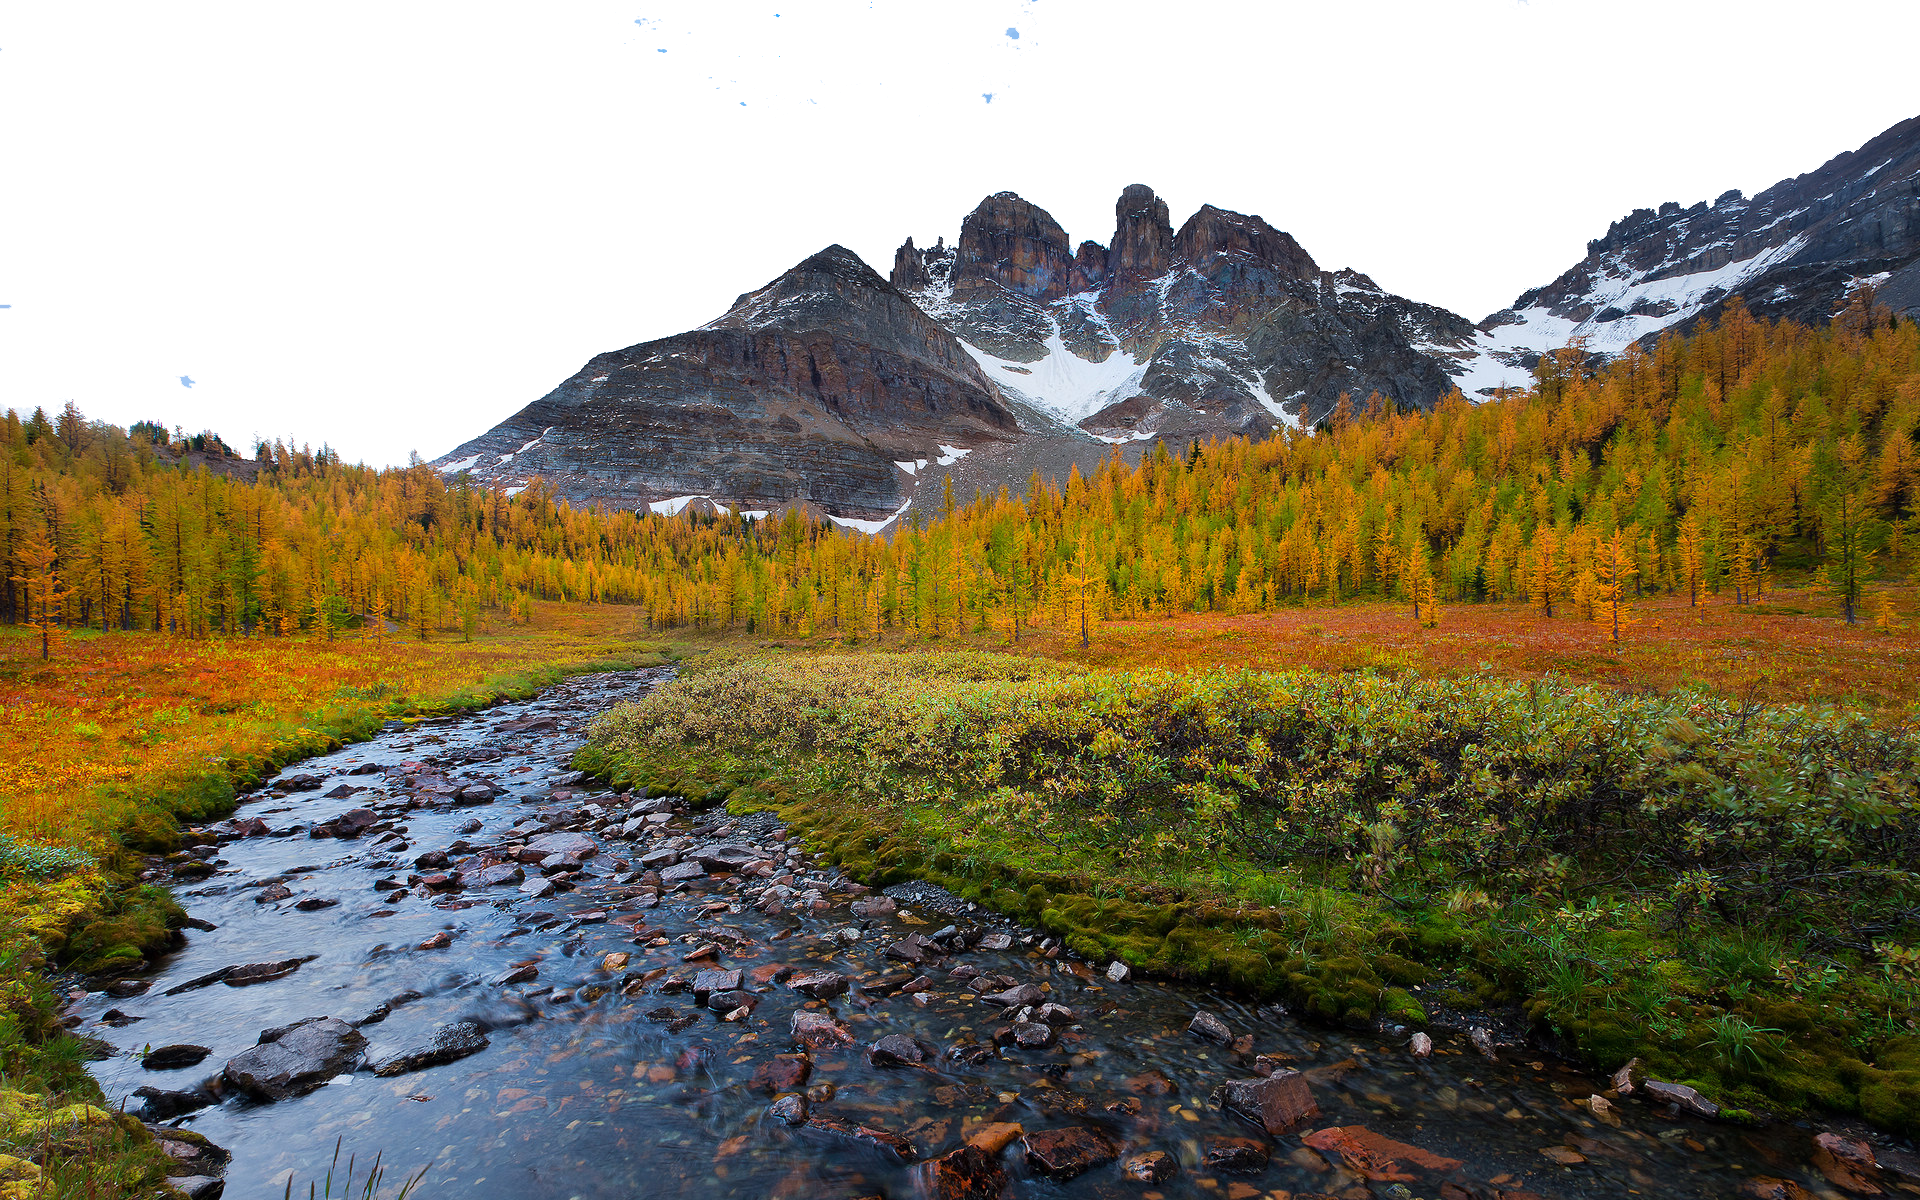 Golden Vegetation by Icy Mountain Tops